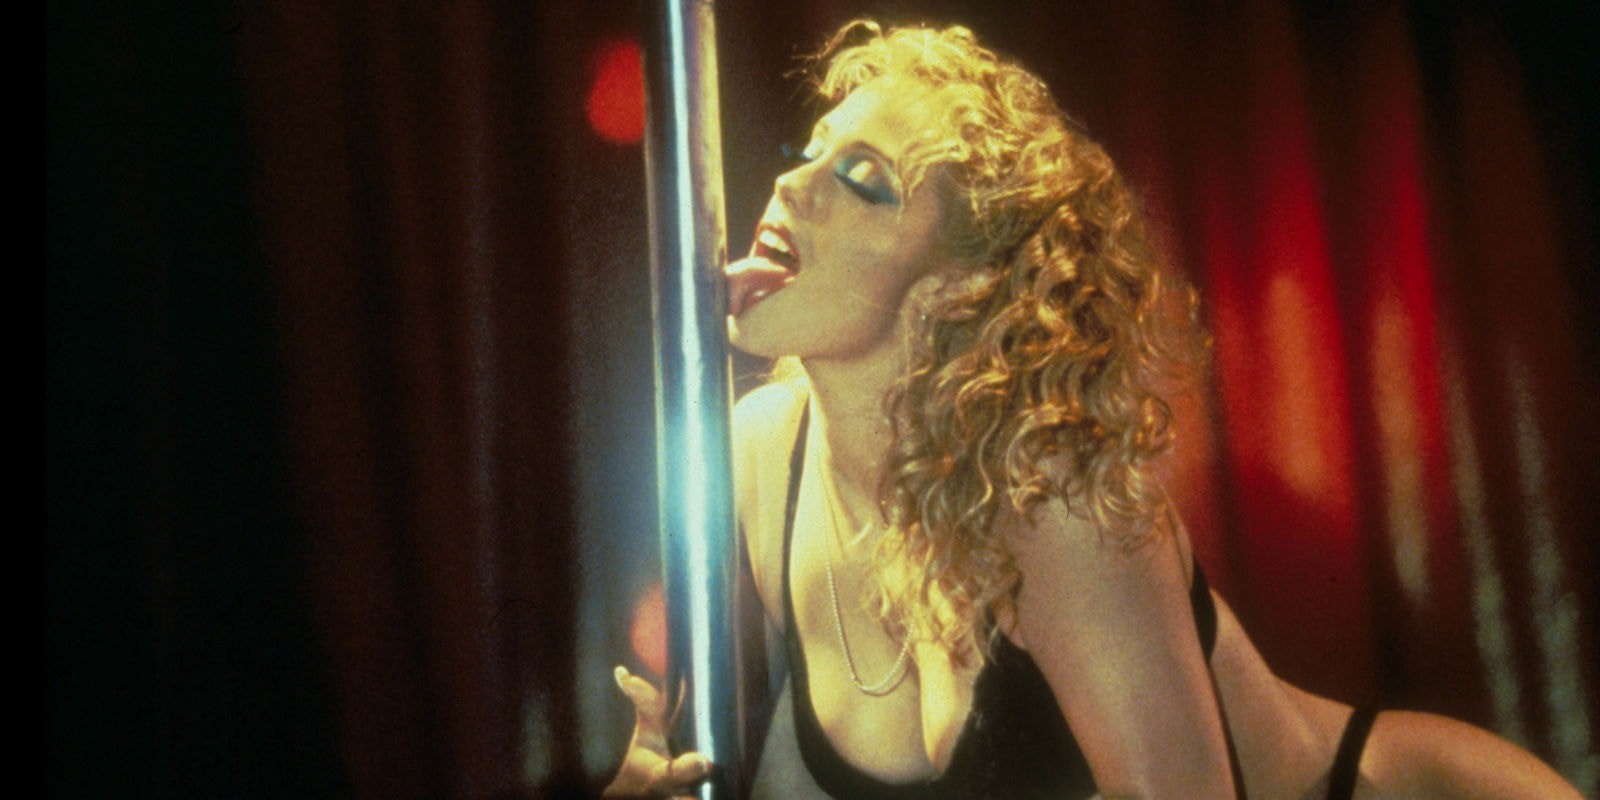 Elizabeth Berkley displays her pole dancing skills in Showgirls